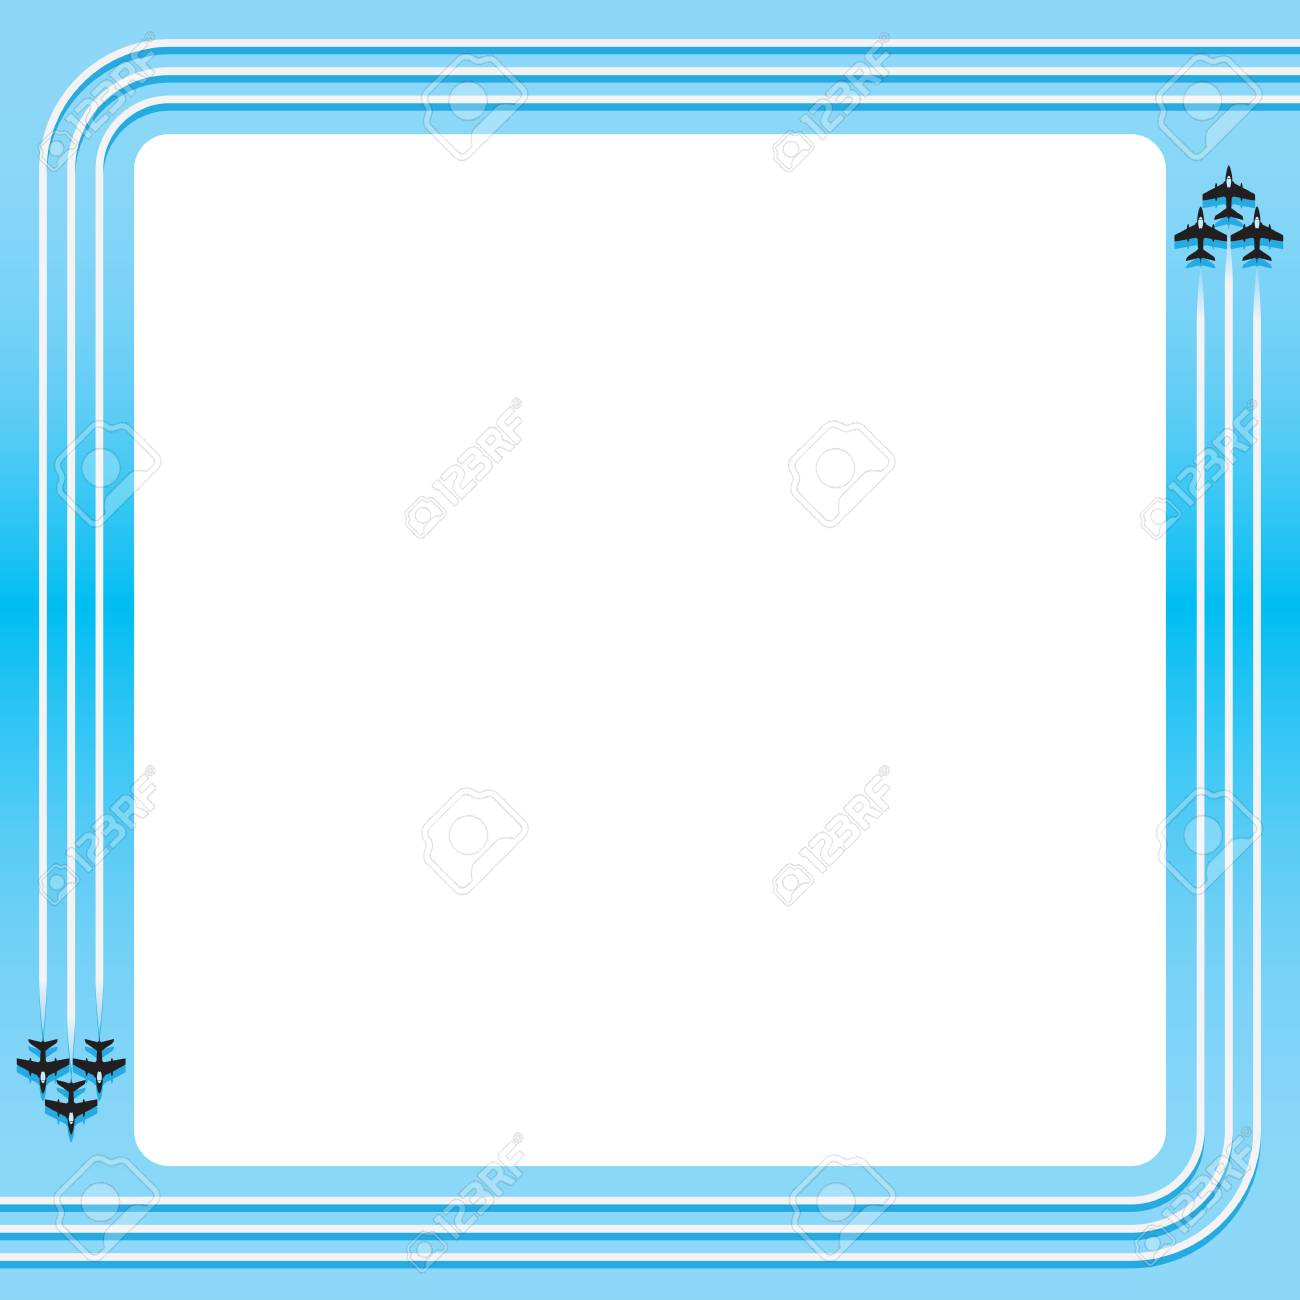 simple vector jet theme border layout element royalty free